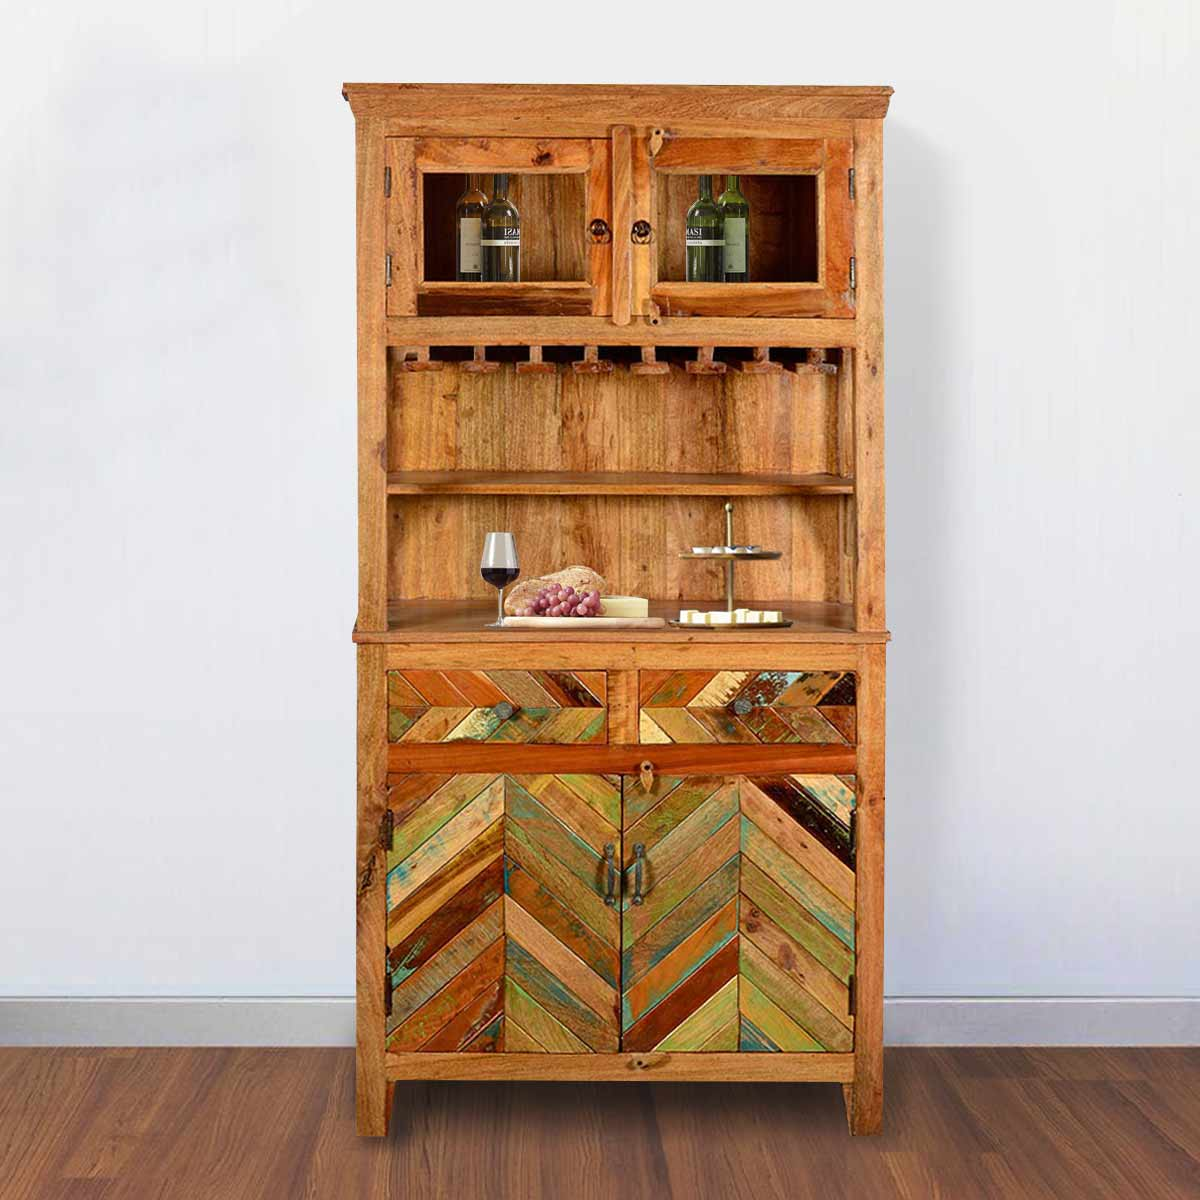 Exceptional Reclaimed Wood Furniture Portland #3: 5033.jpg - Exceptional Reclaimed Wood Furniture Portland #3: 5033.jpg